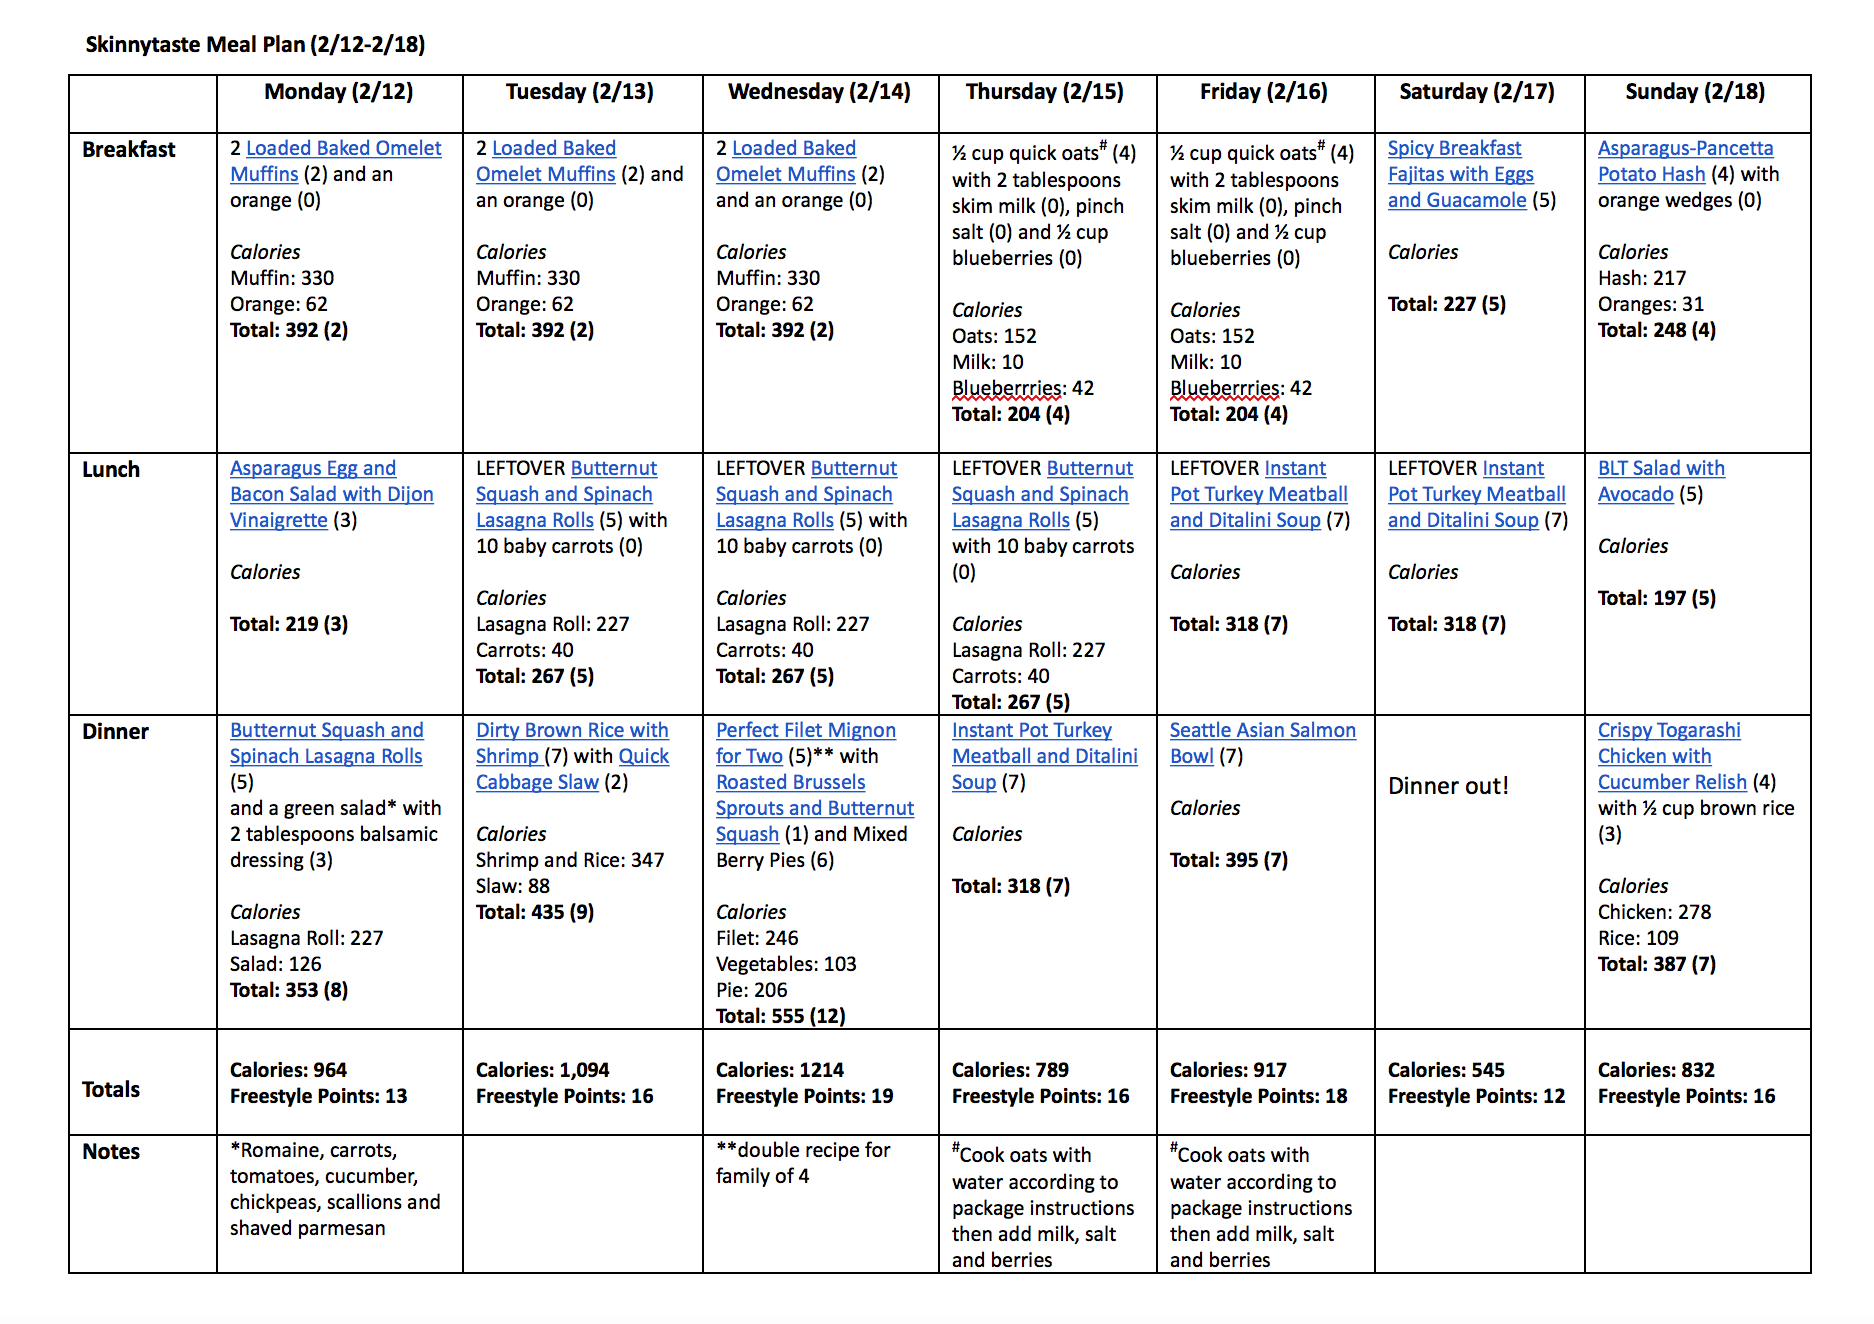 Skinnytaste Meal Plan (February 12-February 18)